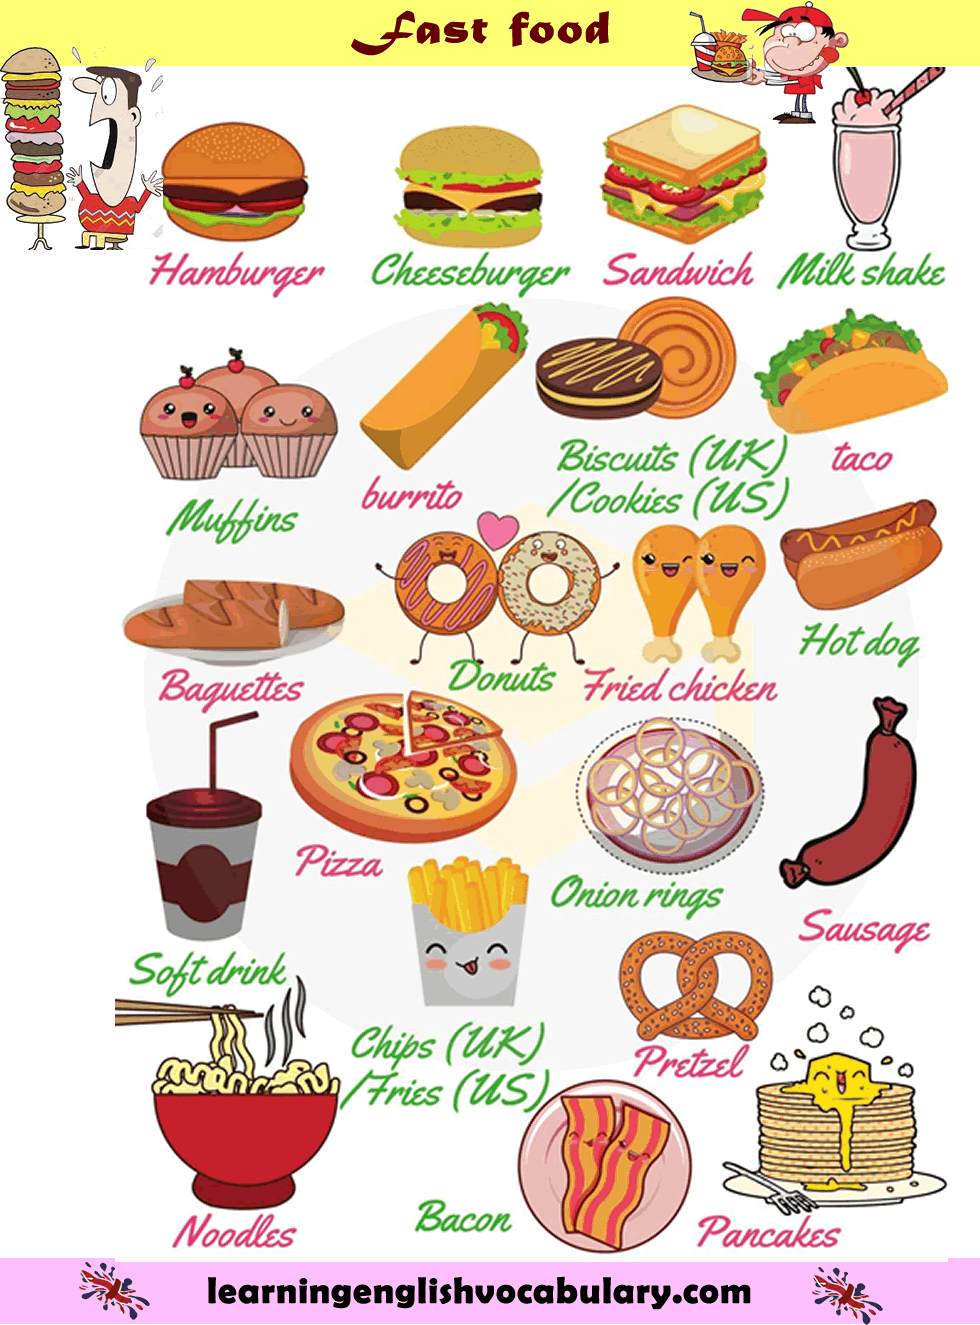 Fast food - ordering fast food vocabulary | Ingles | English